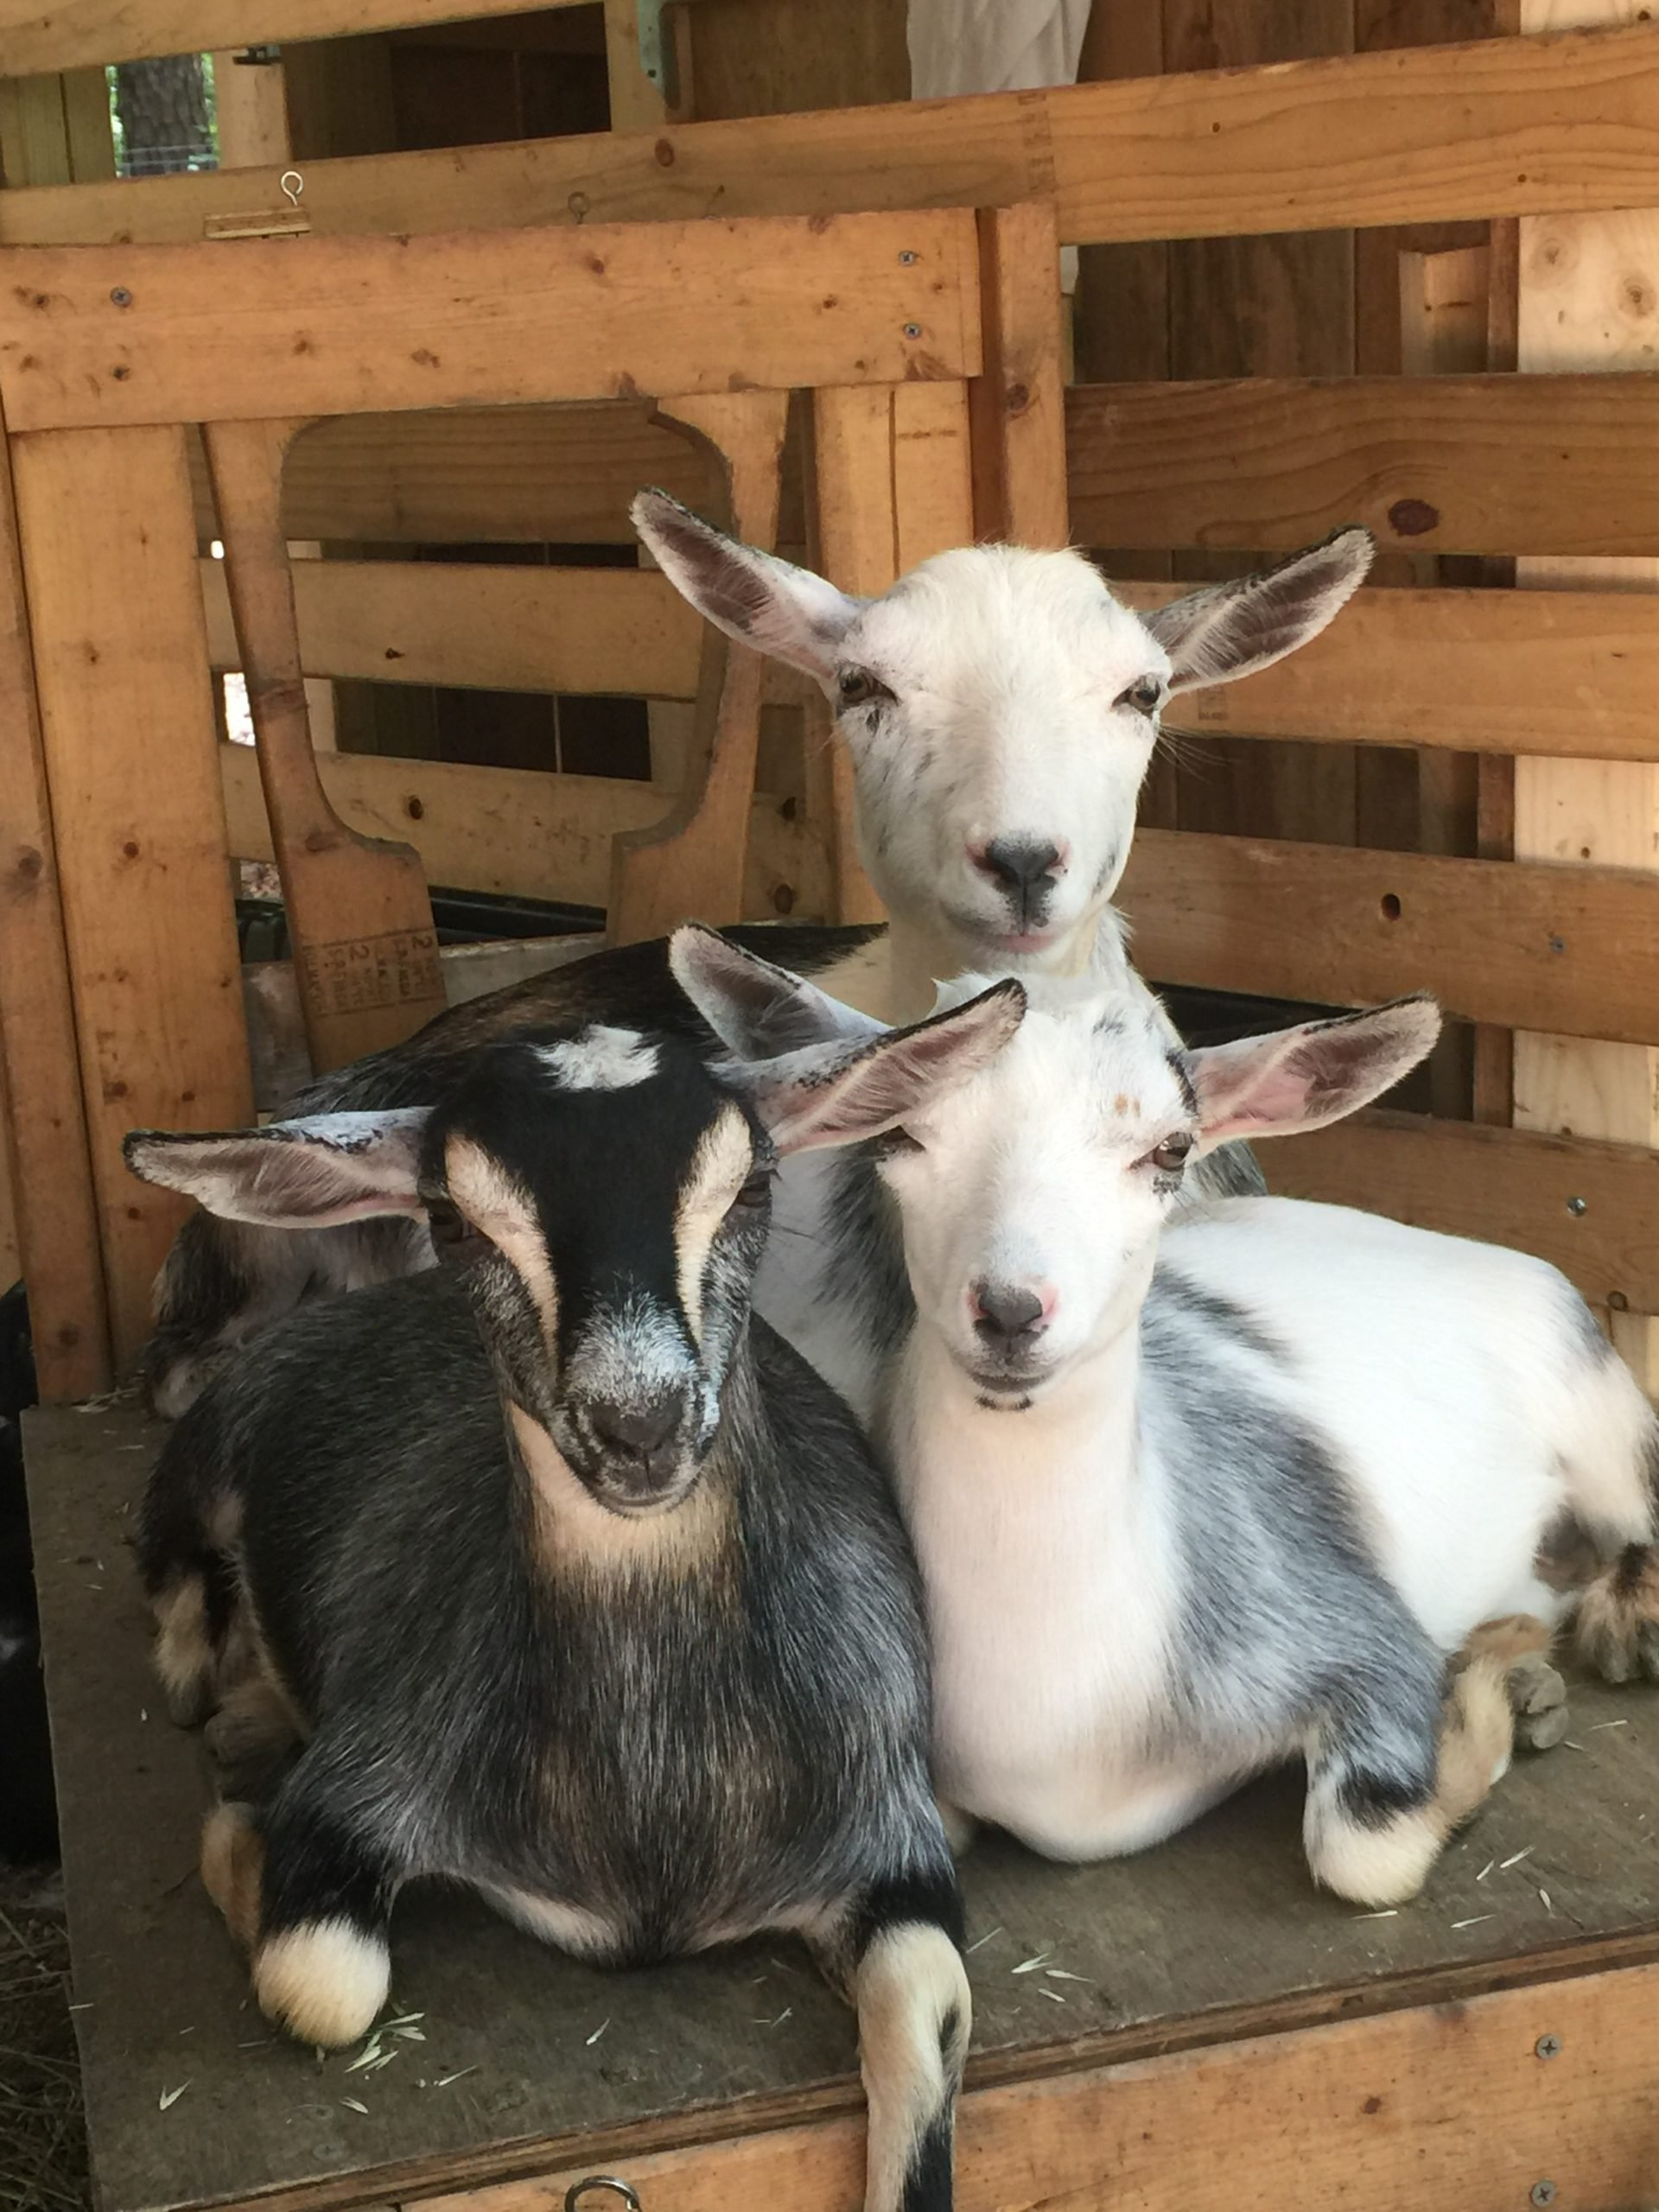 three goats sitting close together on a wooden platform